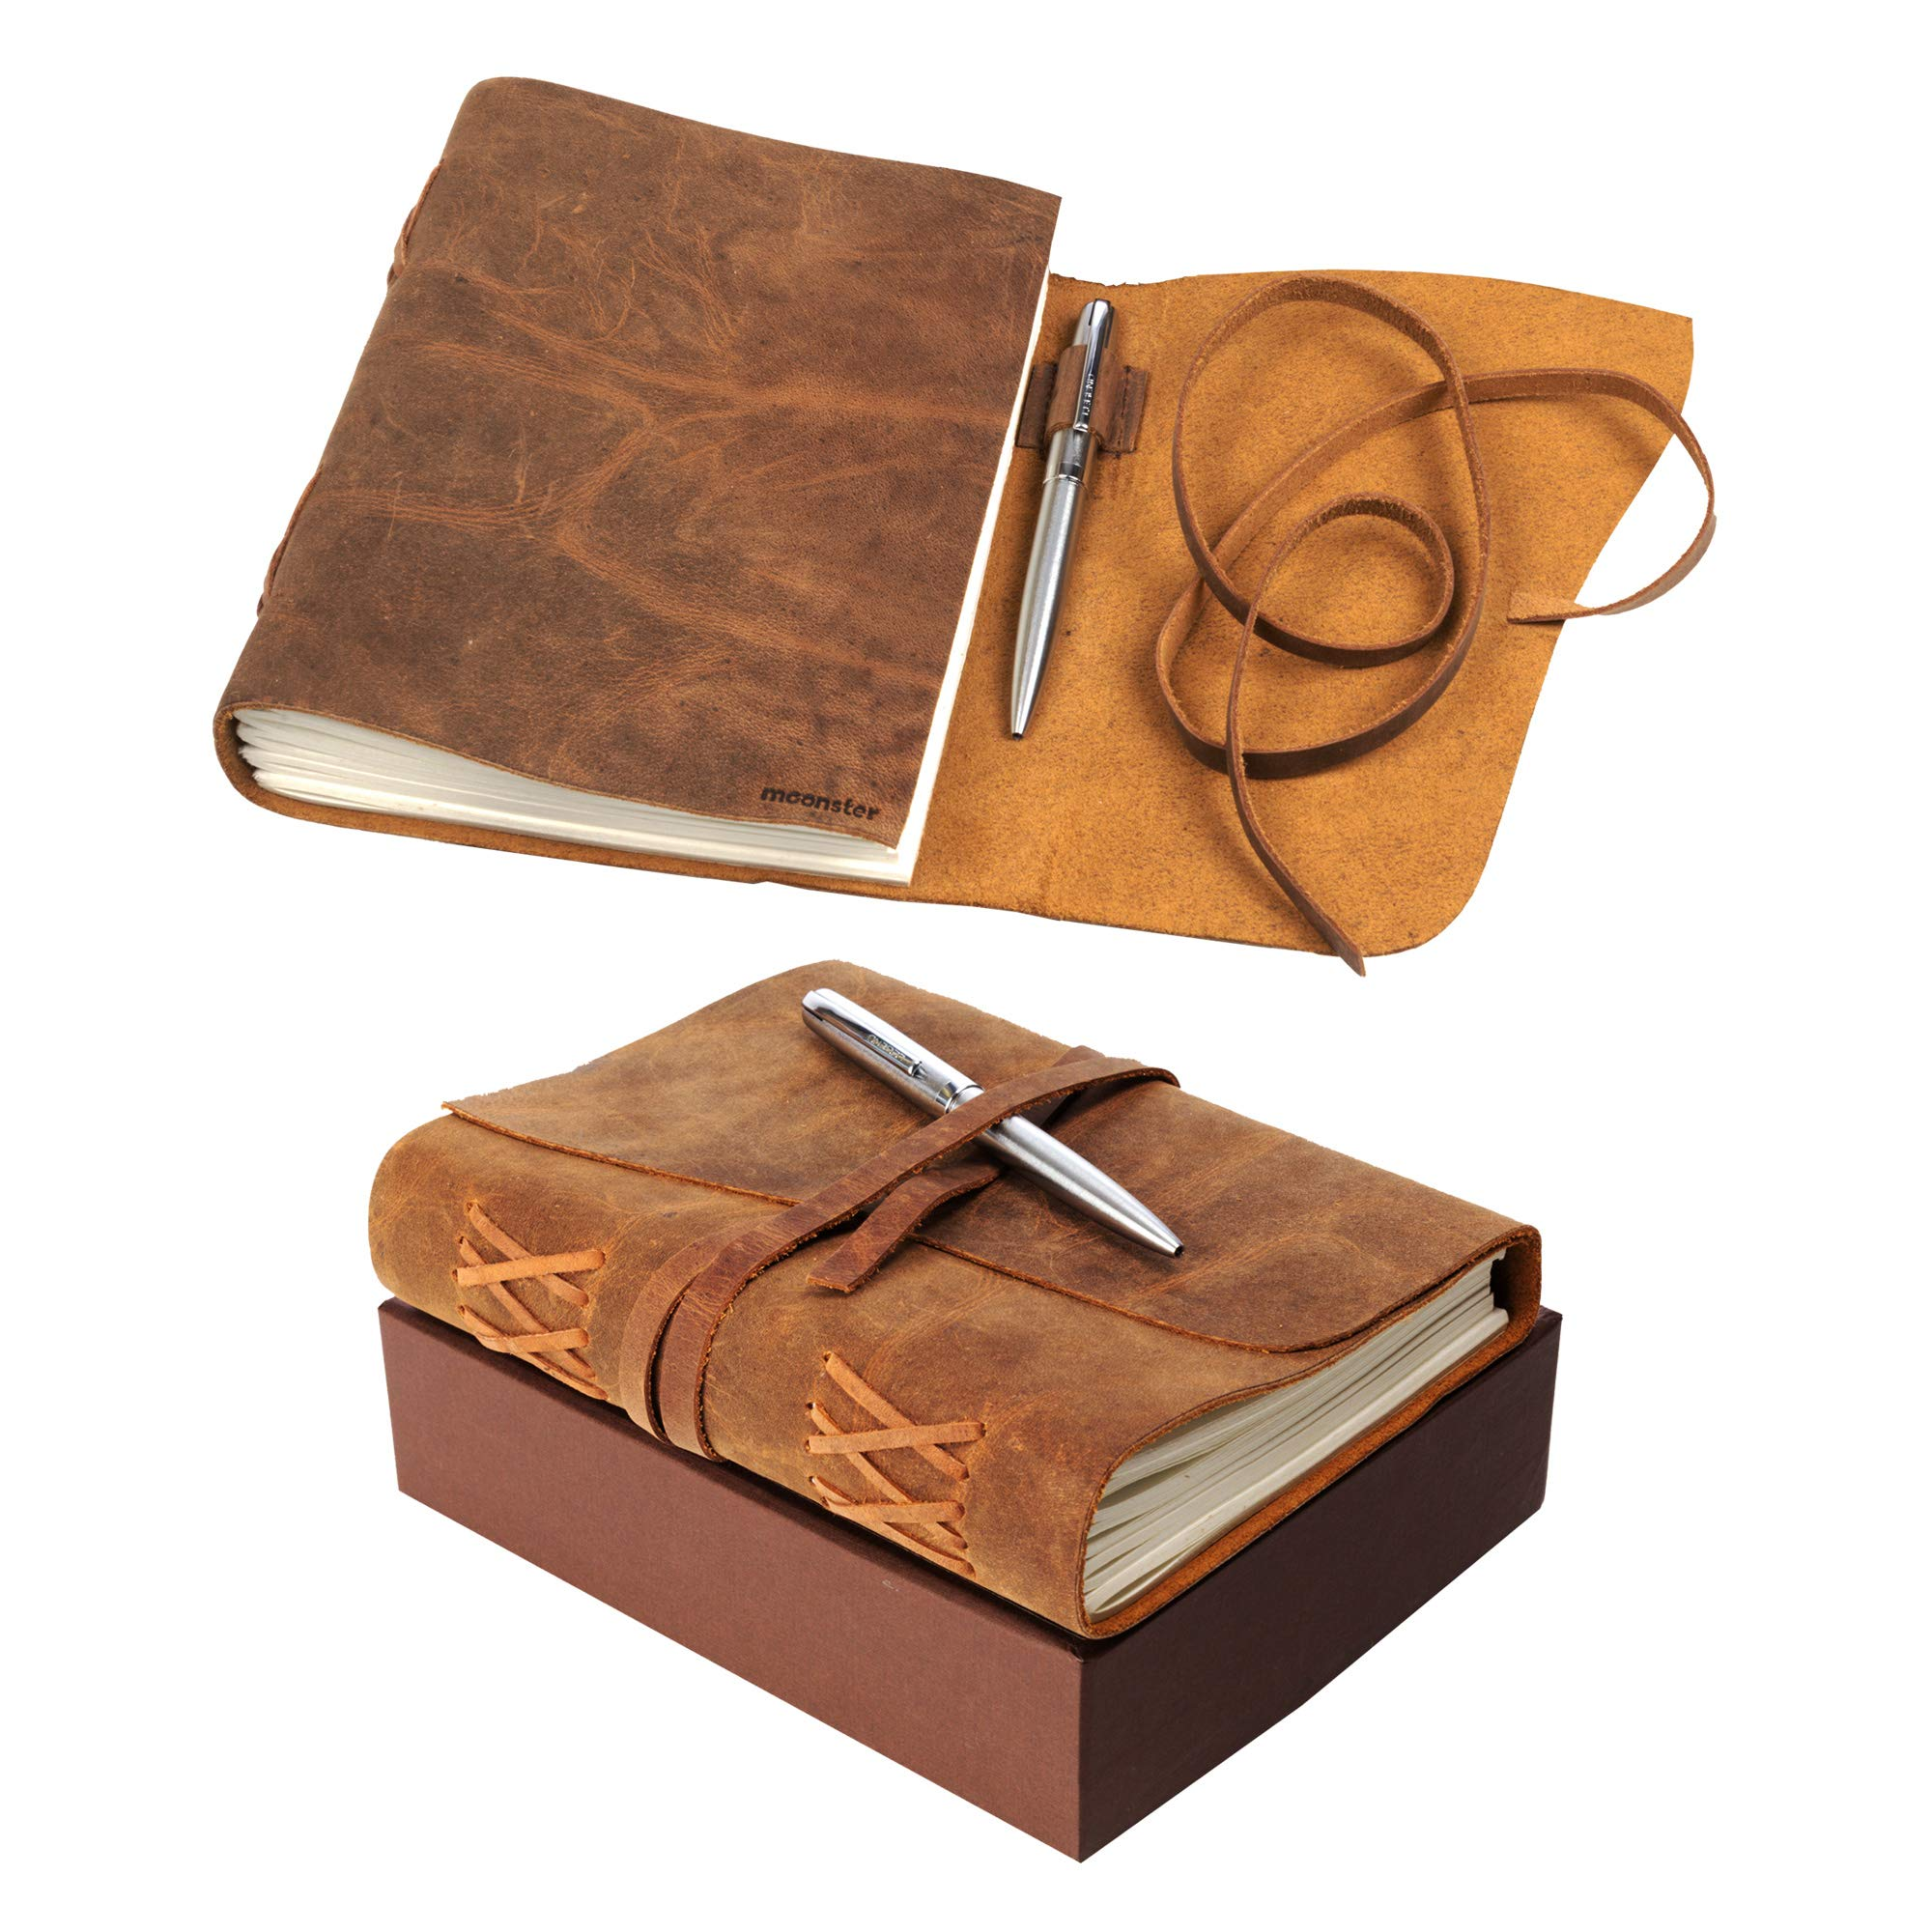 LEATHER JOURNAL Gift Set Handmade - Ideal Present with Secret Pen Holder and Premium Metallic Pen - Writing Notebook 8 x 6 Inches Blank Paper, Rustic A5 Leather-Bound Daily Notepad For Men and Women by moonster